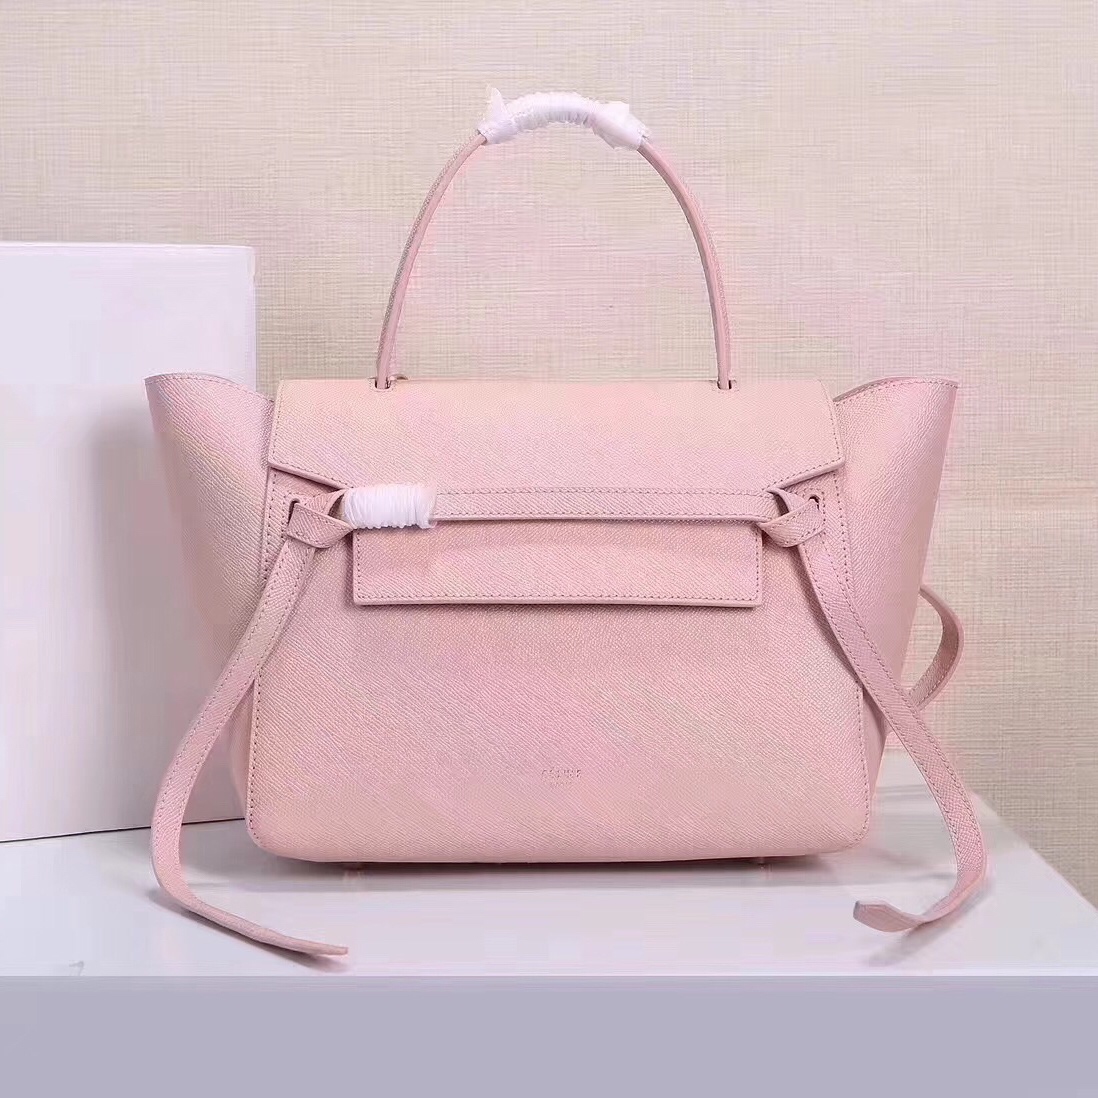 Celine Belt Bag Pink Epsom Leather Tote Handbag